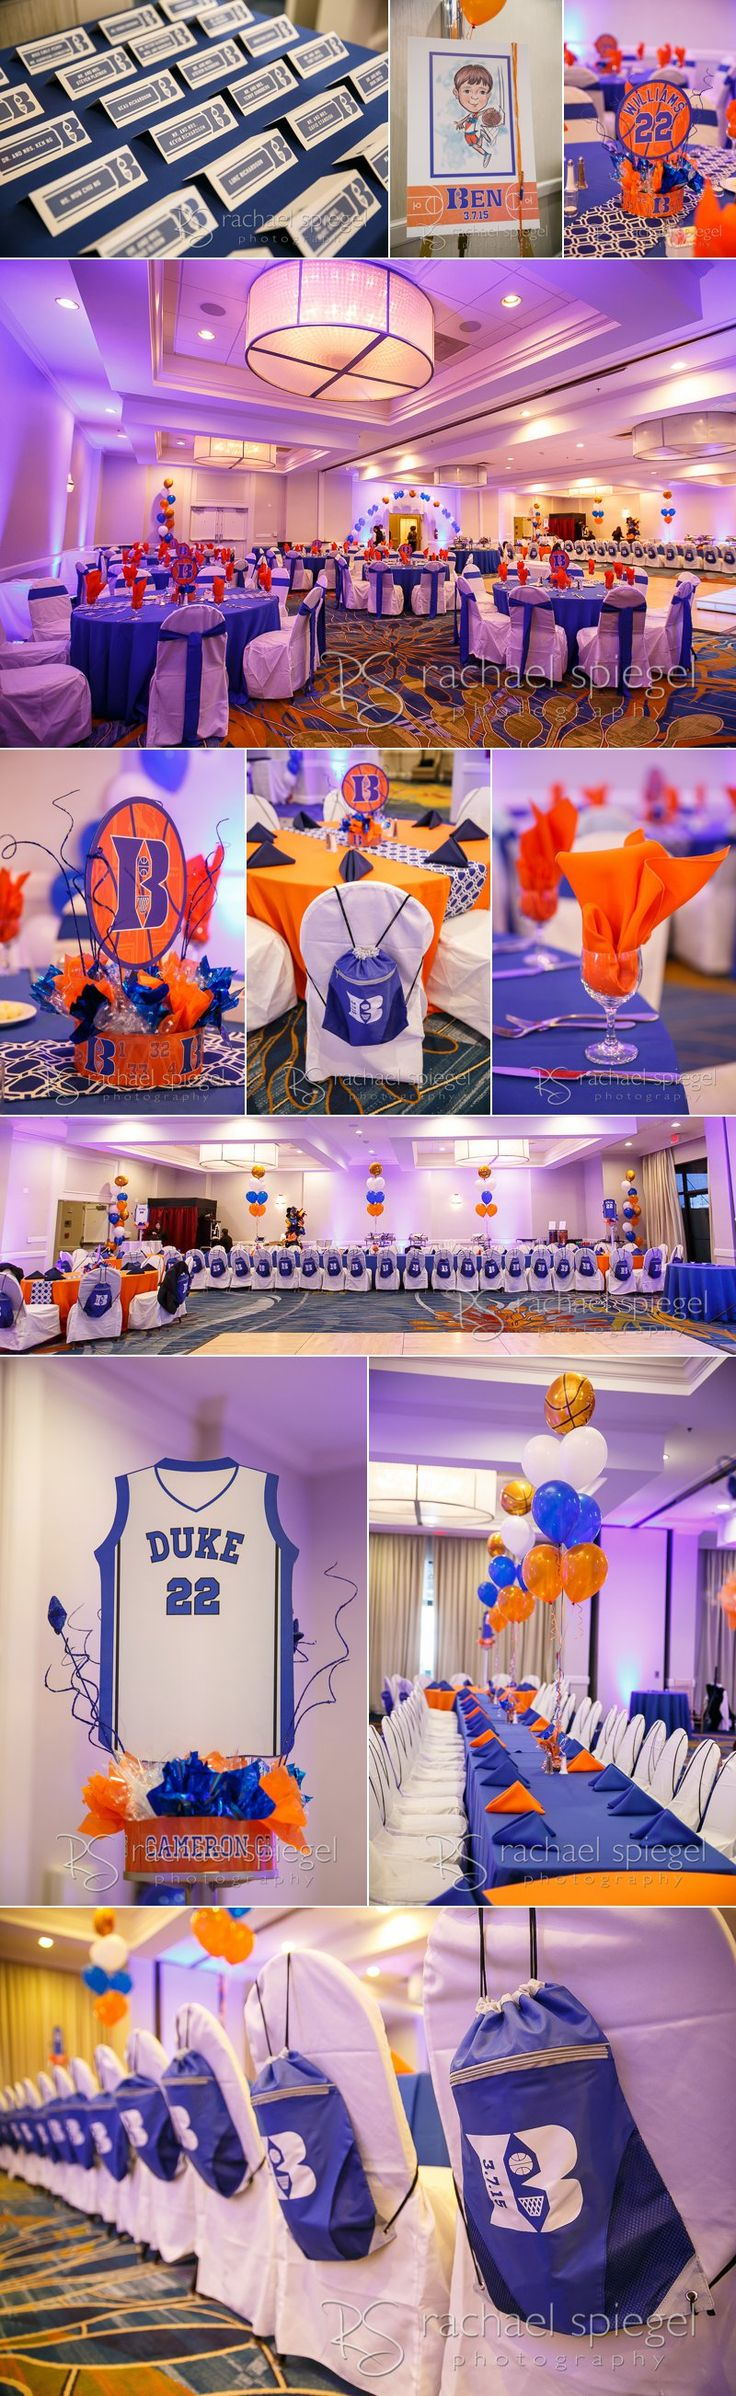 Our Bar Mitzvah Family were fans of the Duke Blue Devils. Logo design and event decor combined this with shout outs to Ben. Photos by Rachael Spiegel Photography